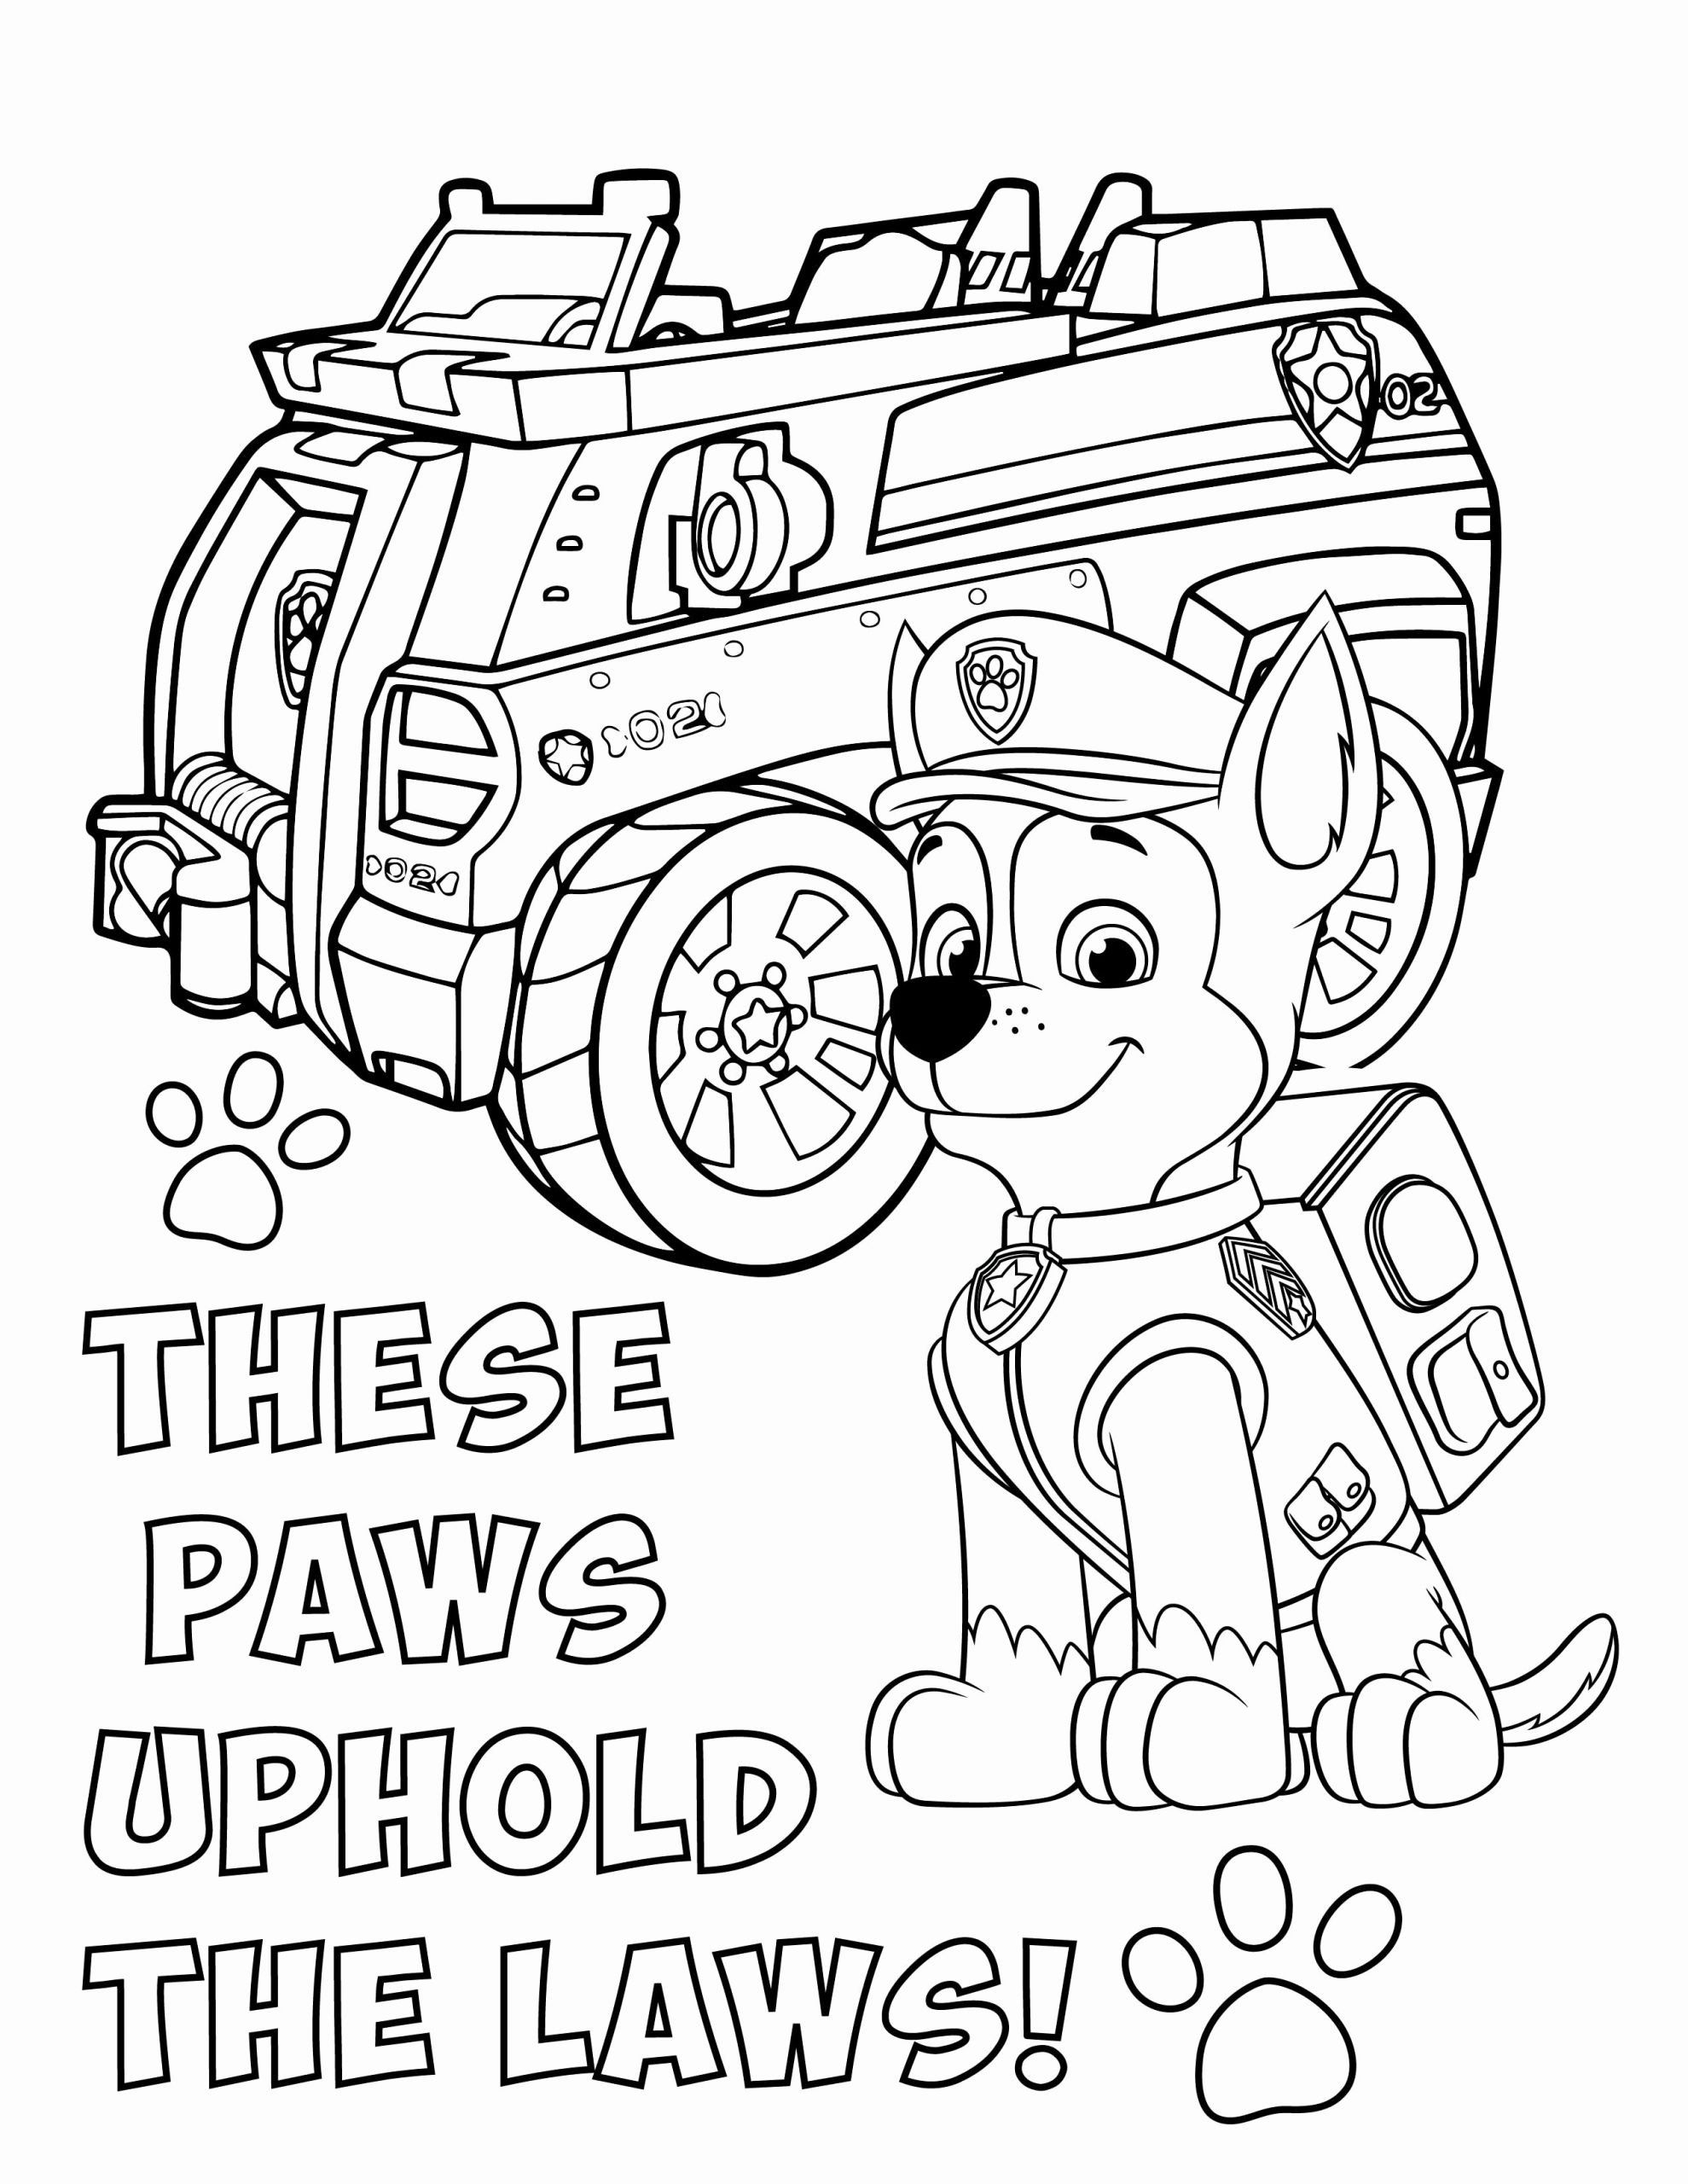 Coloring Page Paw Patrol Awesome Free Paw Patrol Coloring Pages Paw Patrol Coloring Pages Paw Patrol Coloring Coloring Books